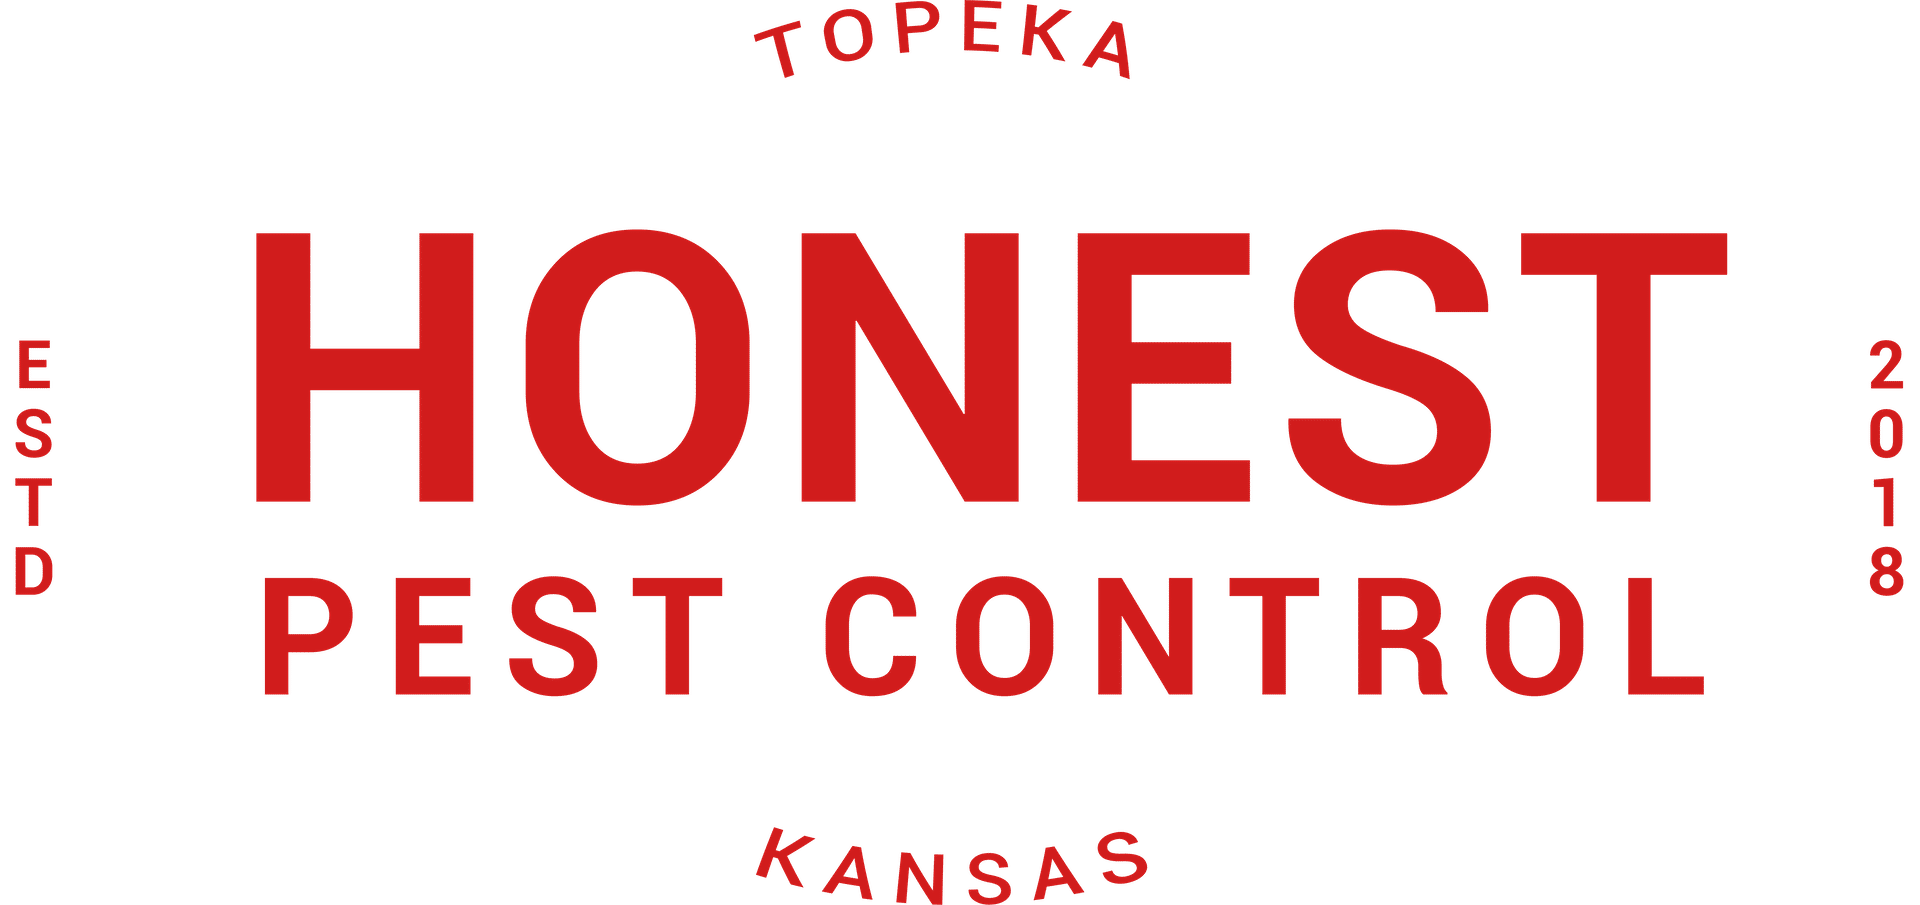 A logo for Honest Pest Control in Topeka, KS.